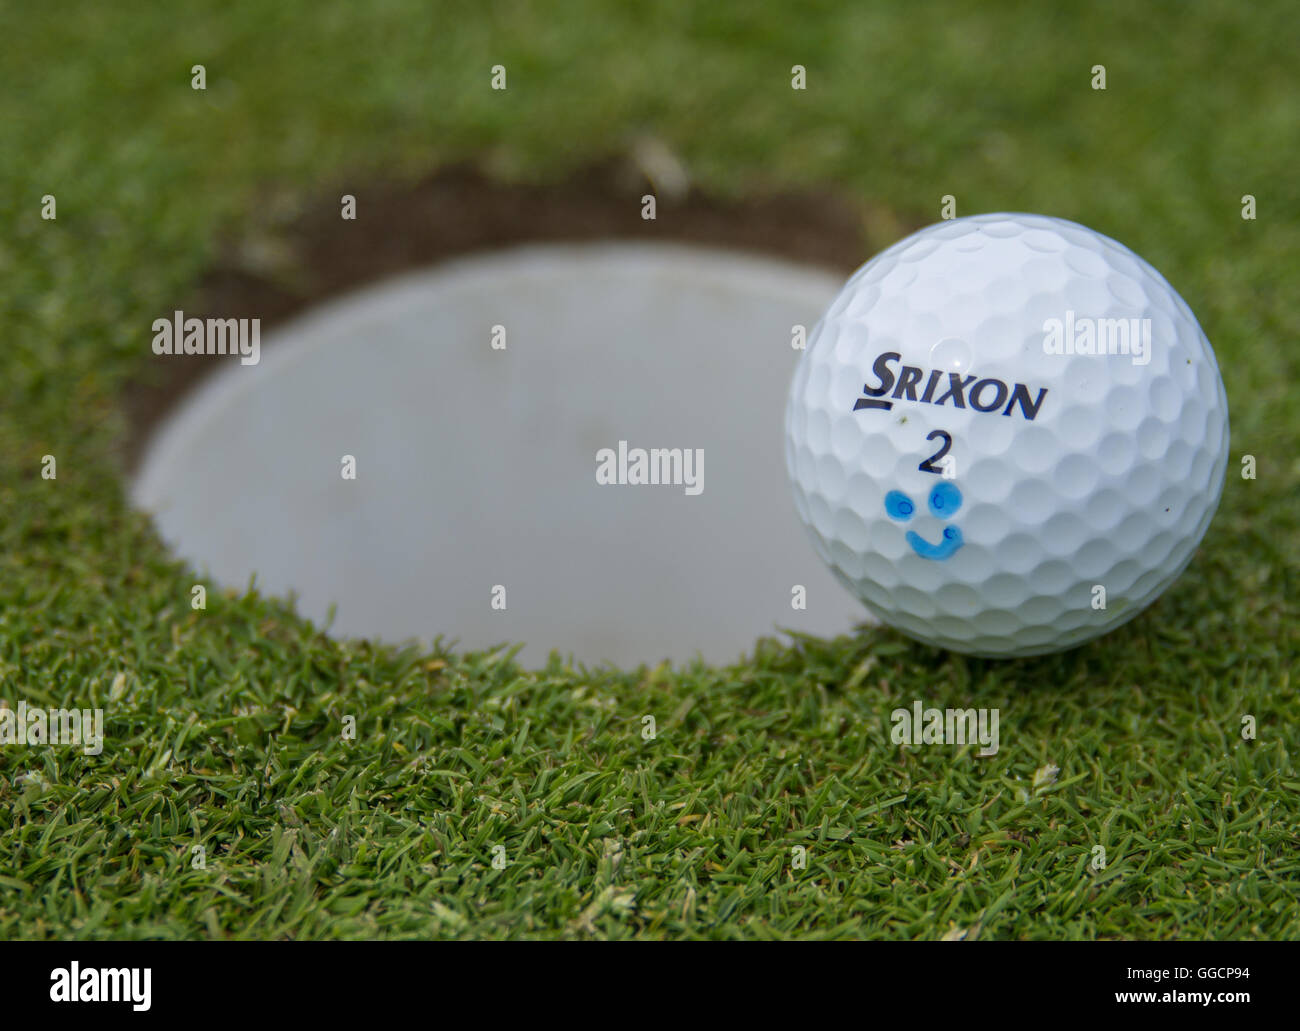 Srixon Golf Ball resting besides the hole (landscape) - Stock Image